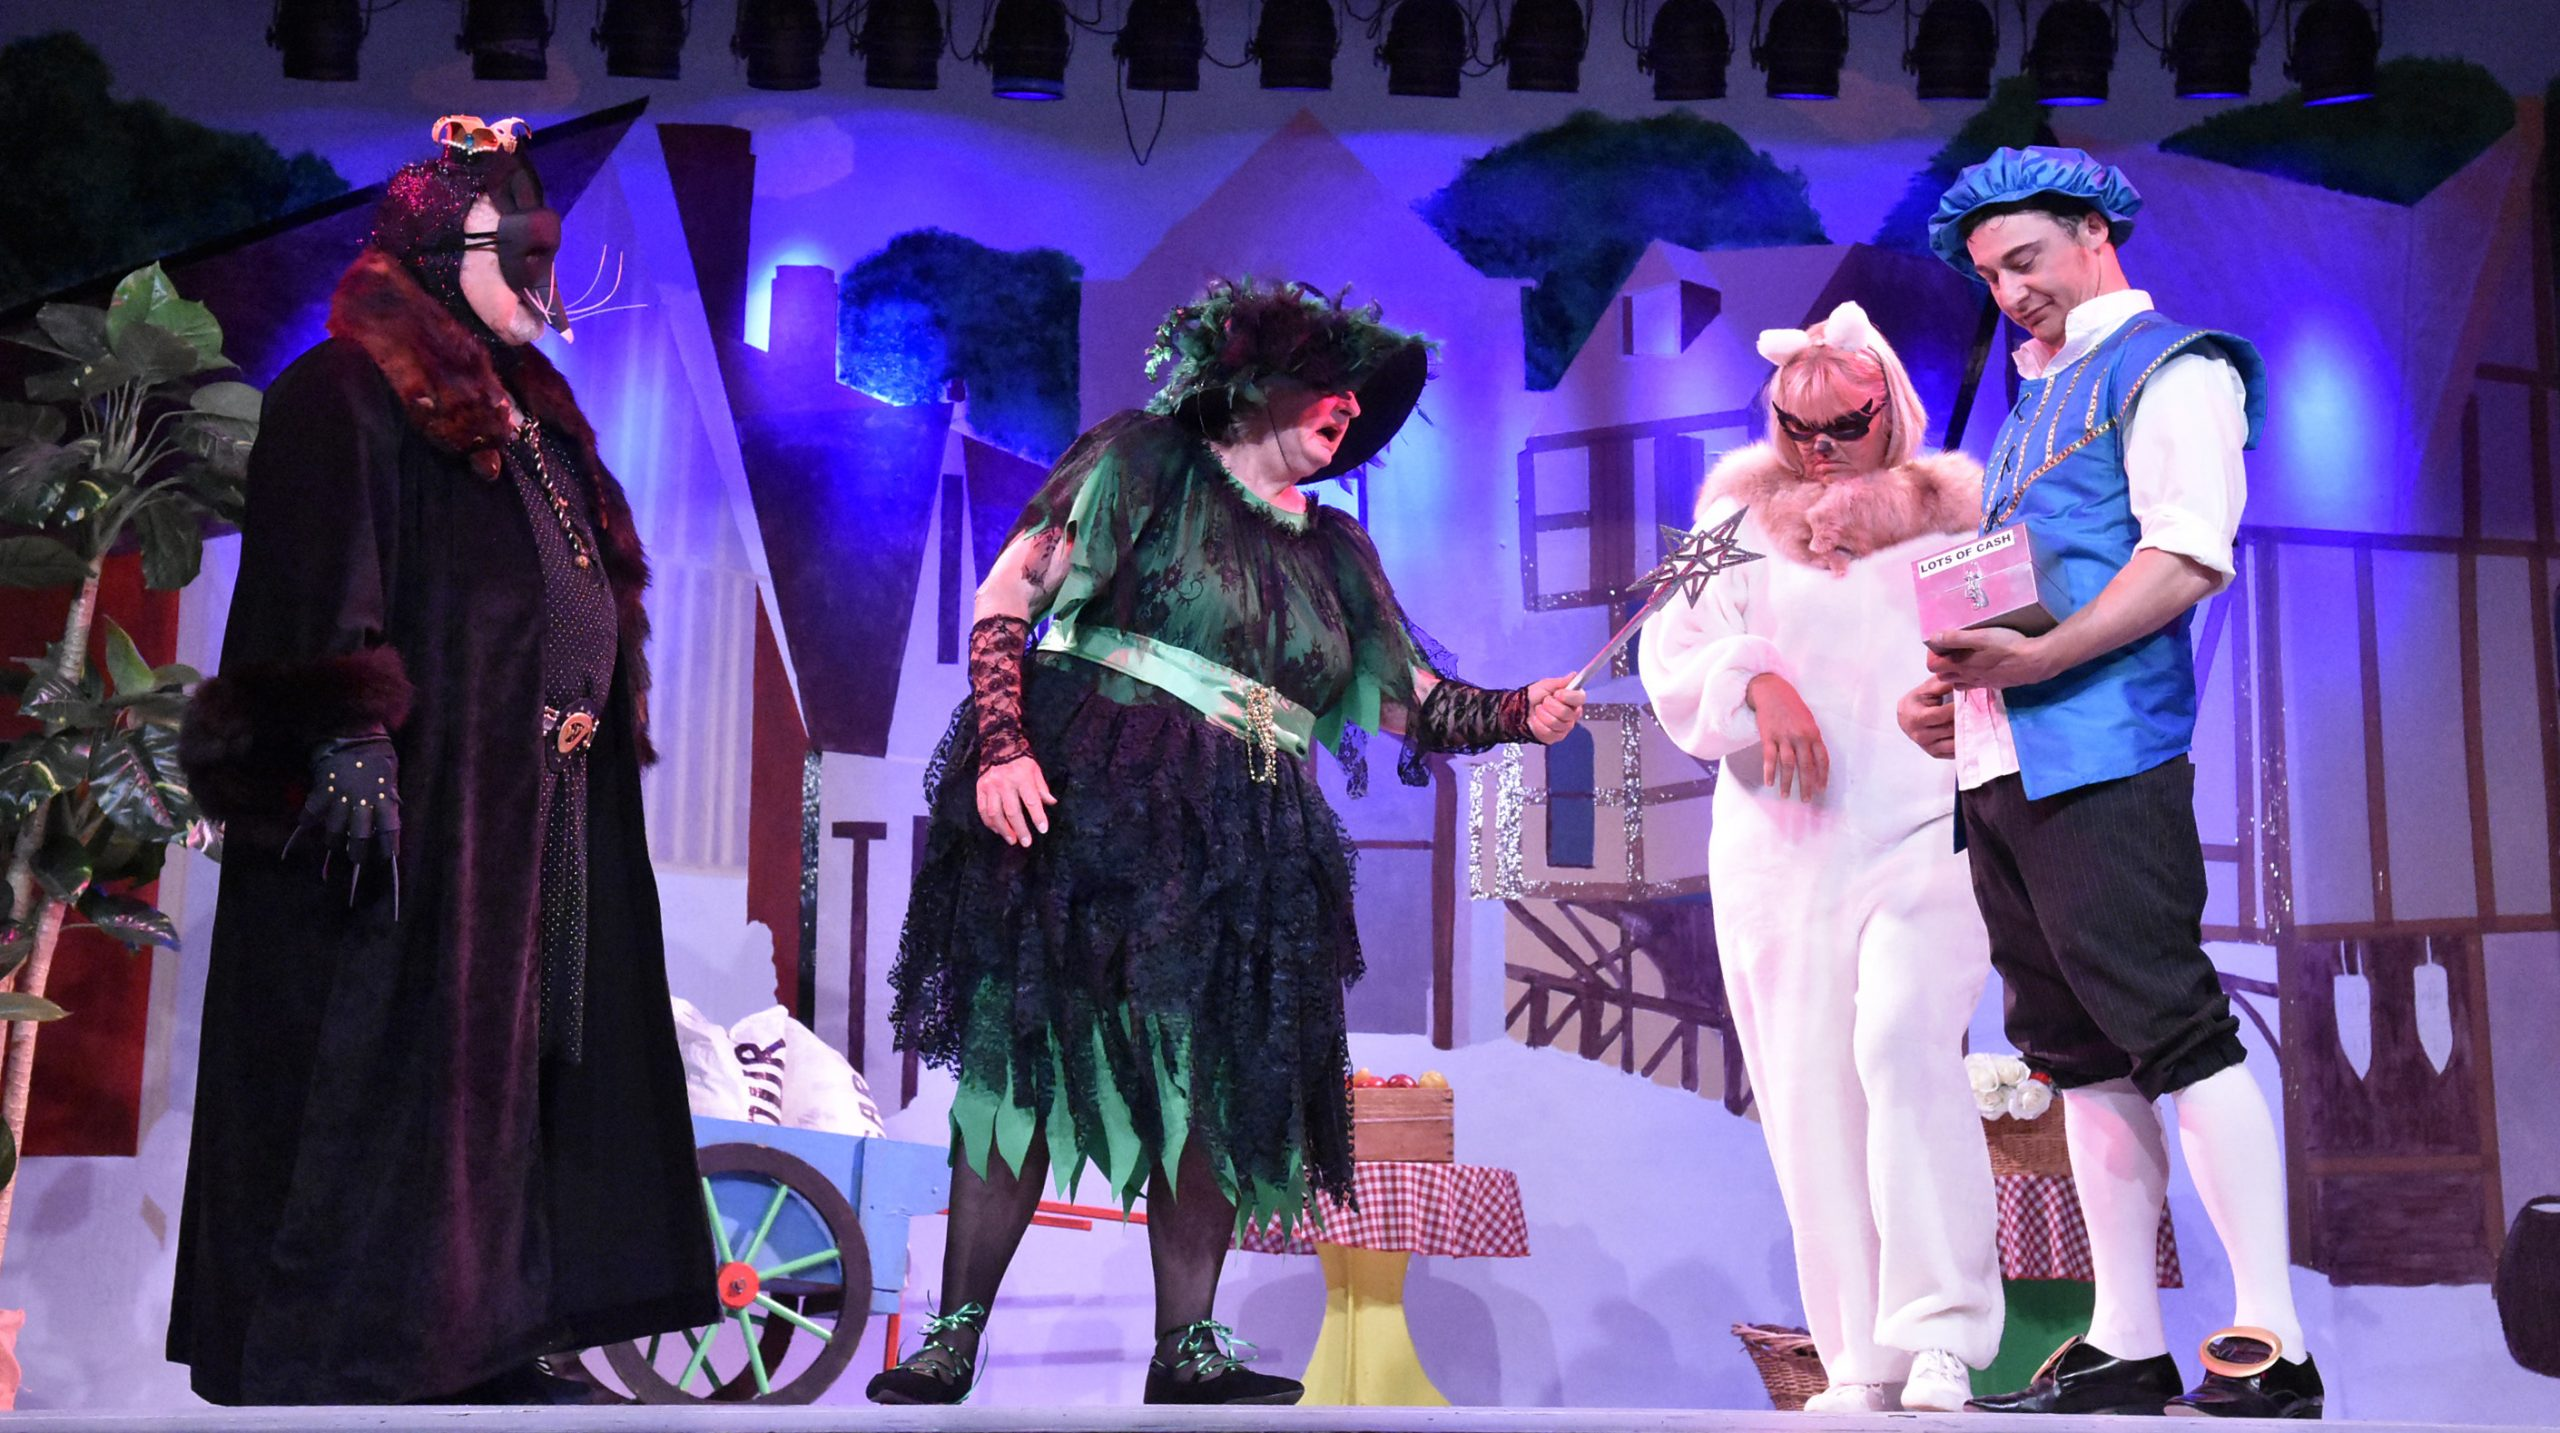 Trouble 07 – Licensed to Panto is a license to laugh